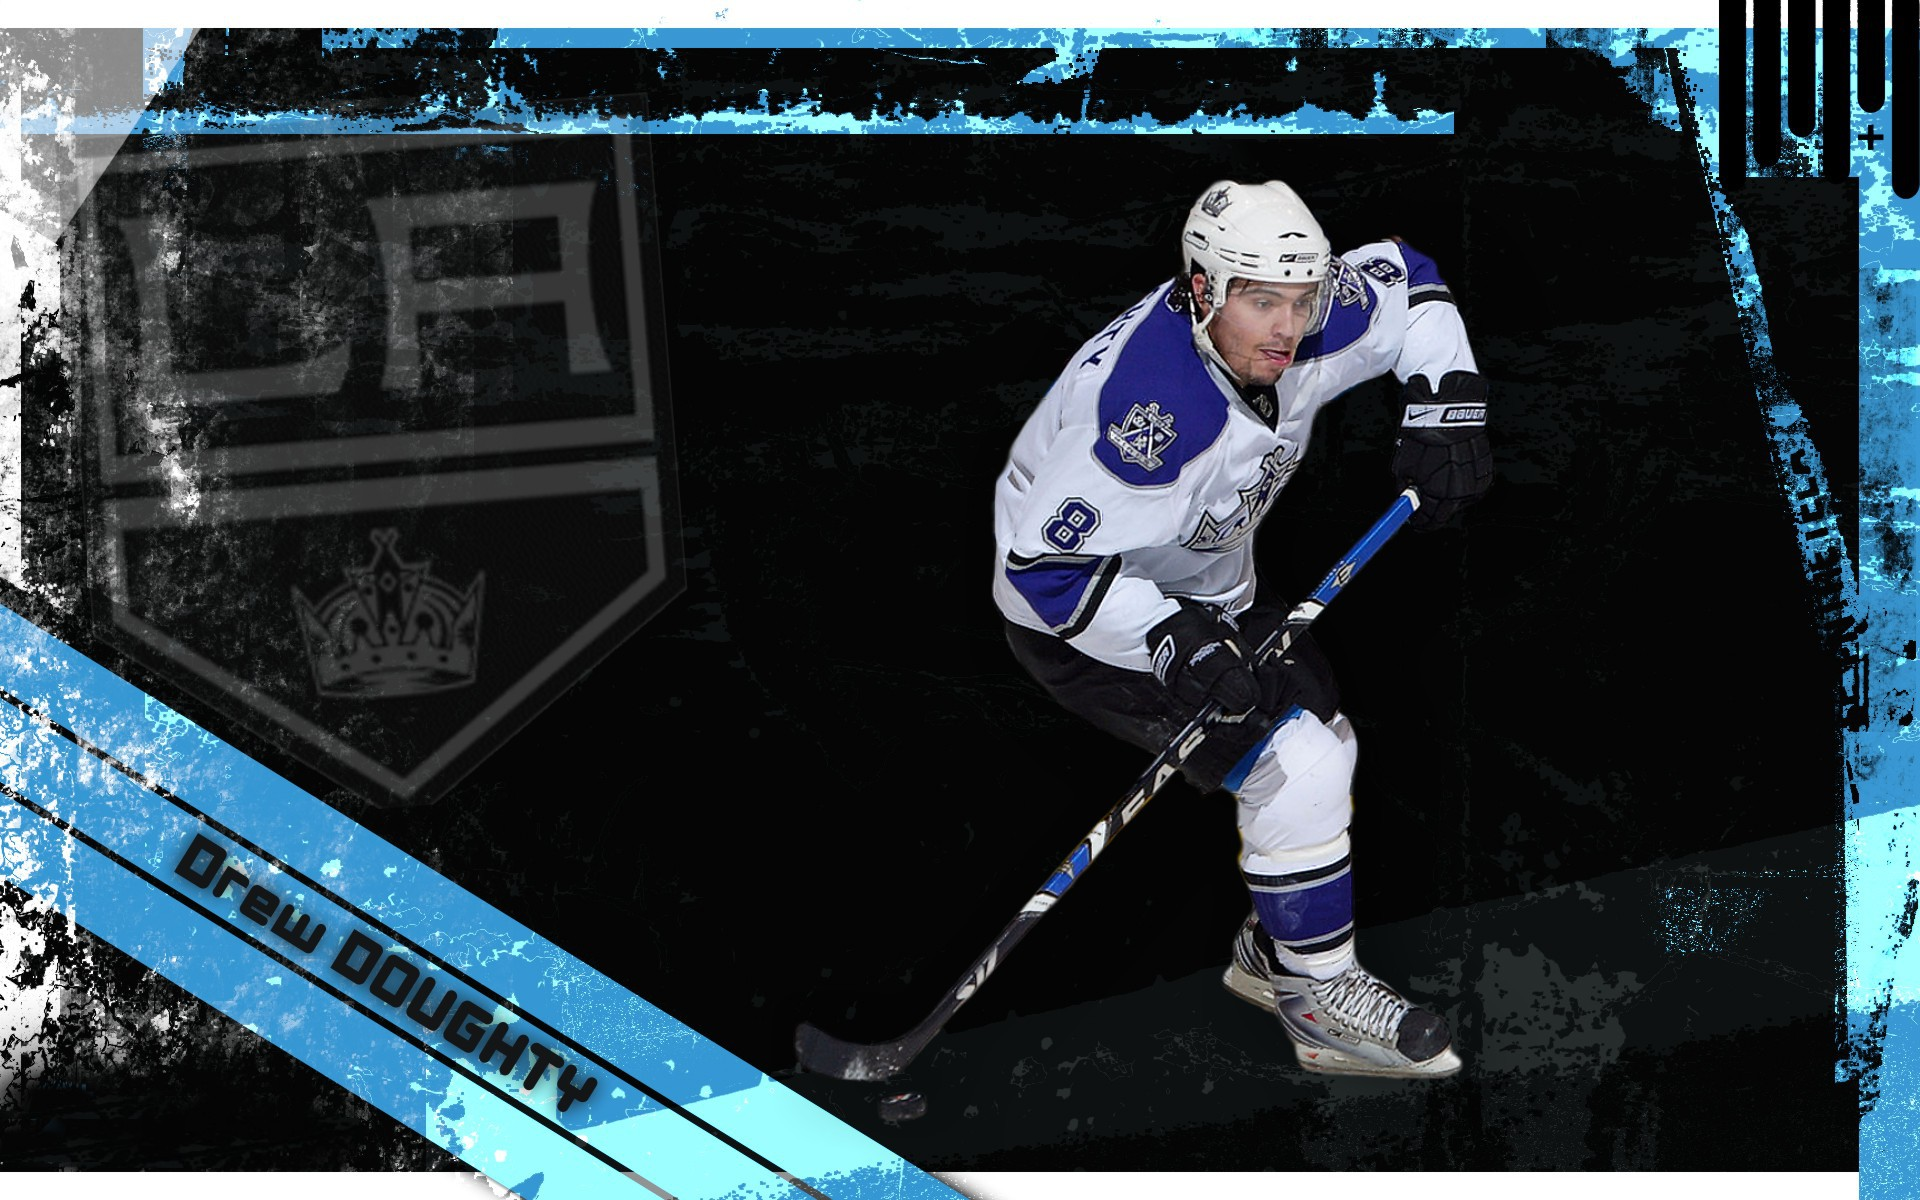 Drew Doughty on black background wallpapers and images 1920x1200 1920x1200